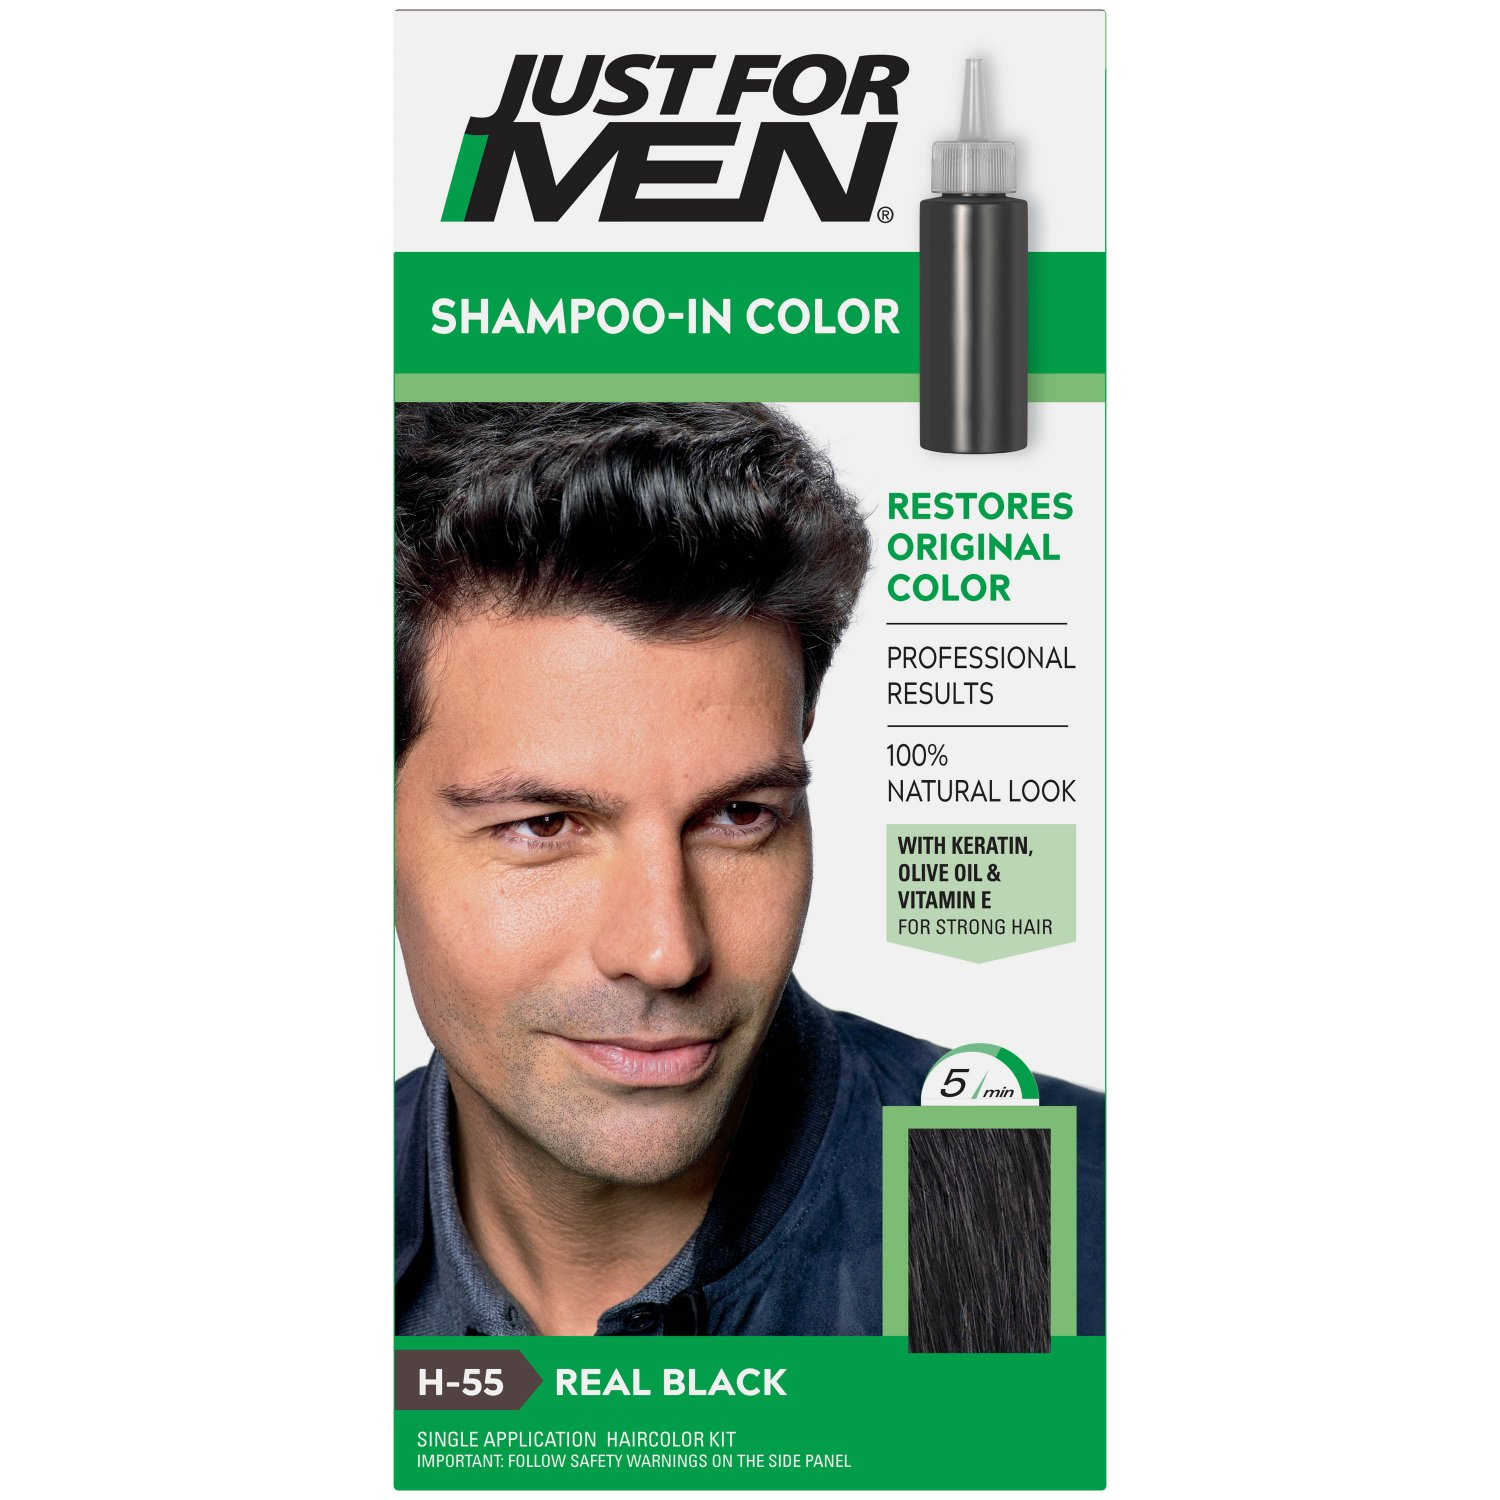 Just For Men Shampoo-In Color Gray Hair Coloring for Men Real Black H-55